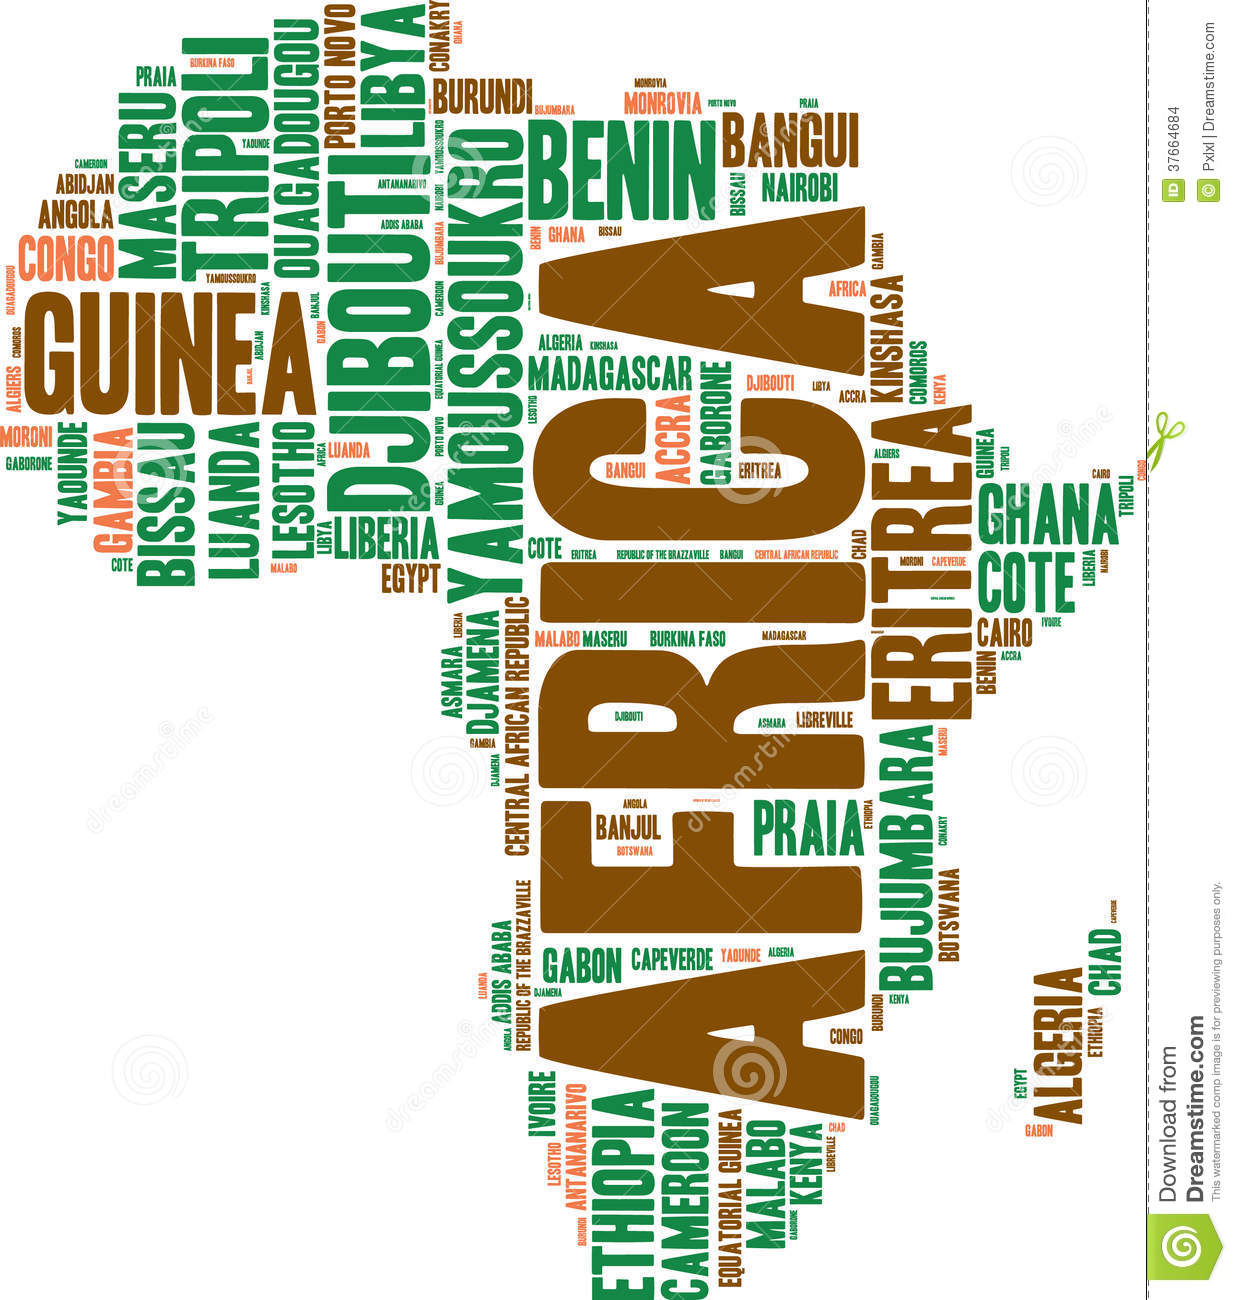 Africa map tag cloud stock illustration. Illustration of